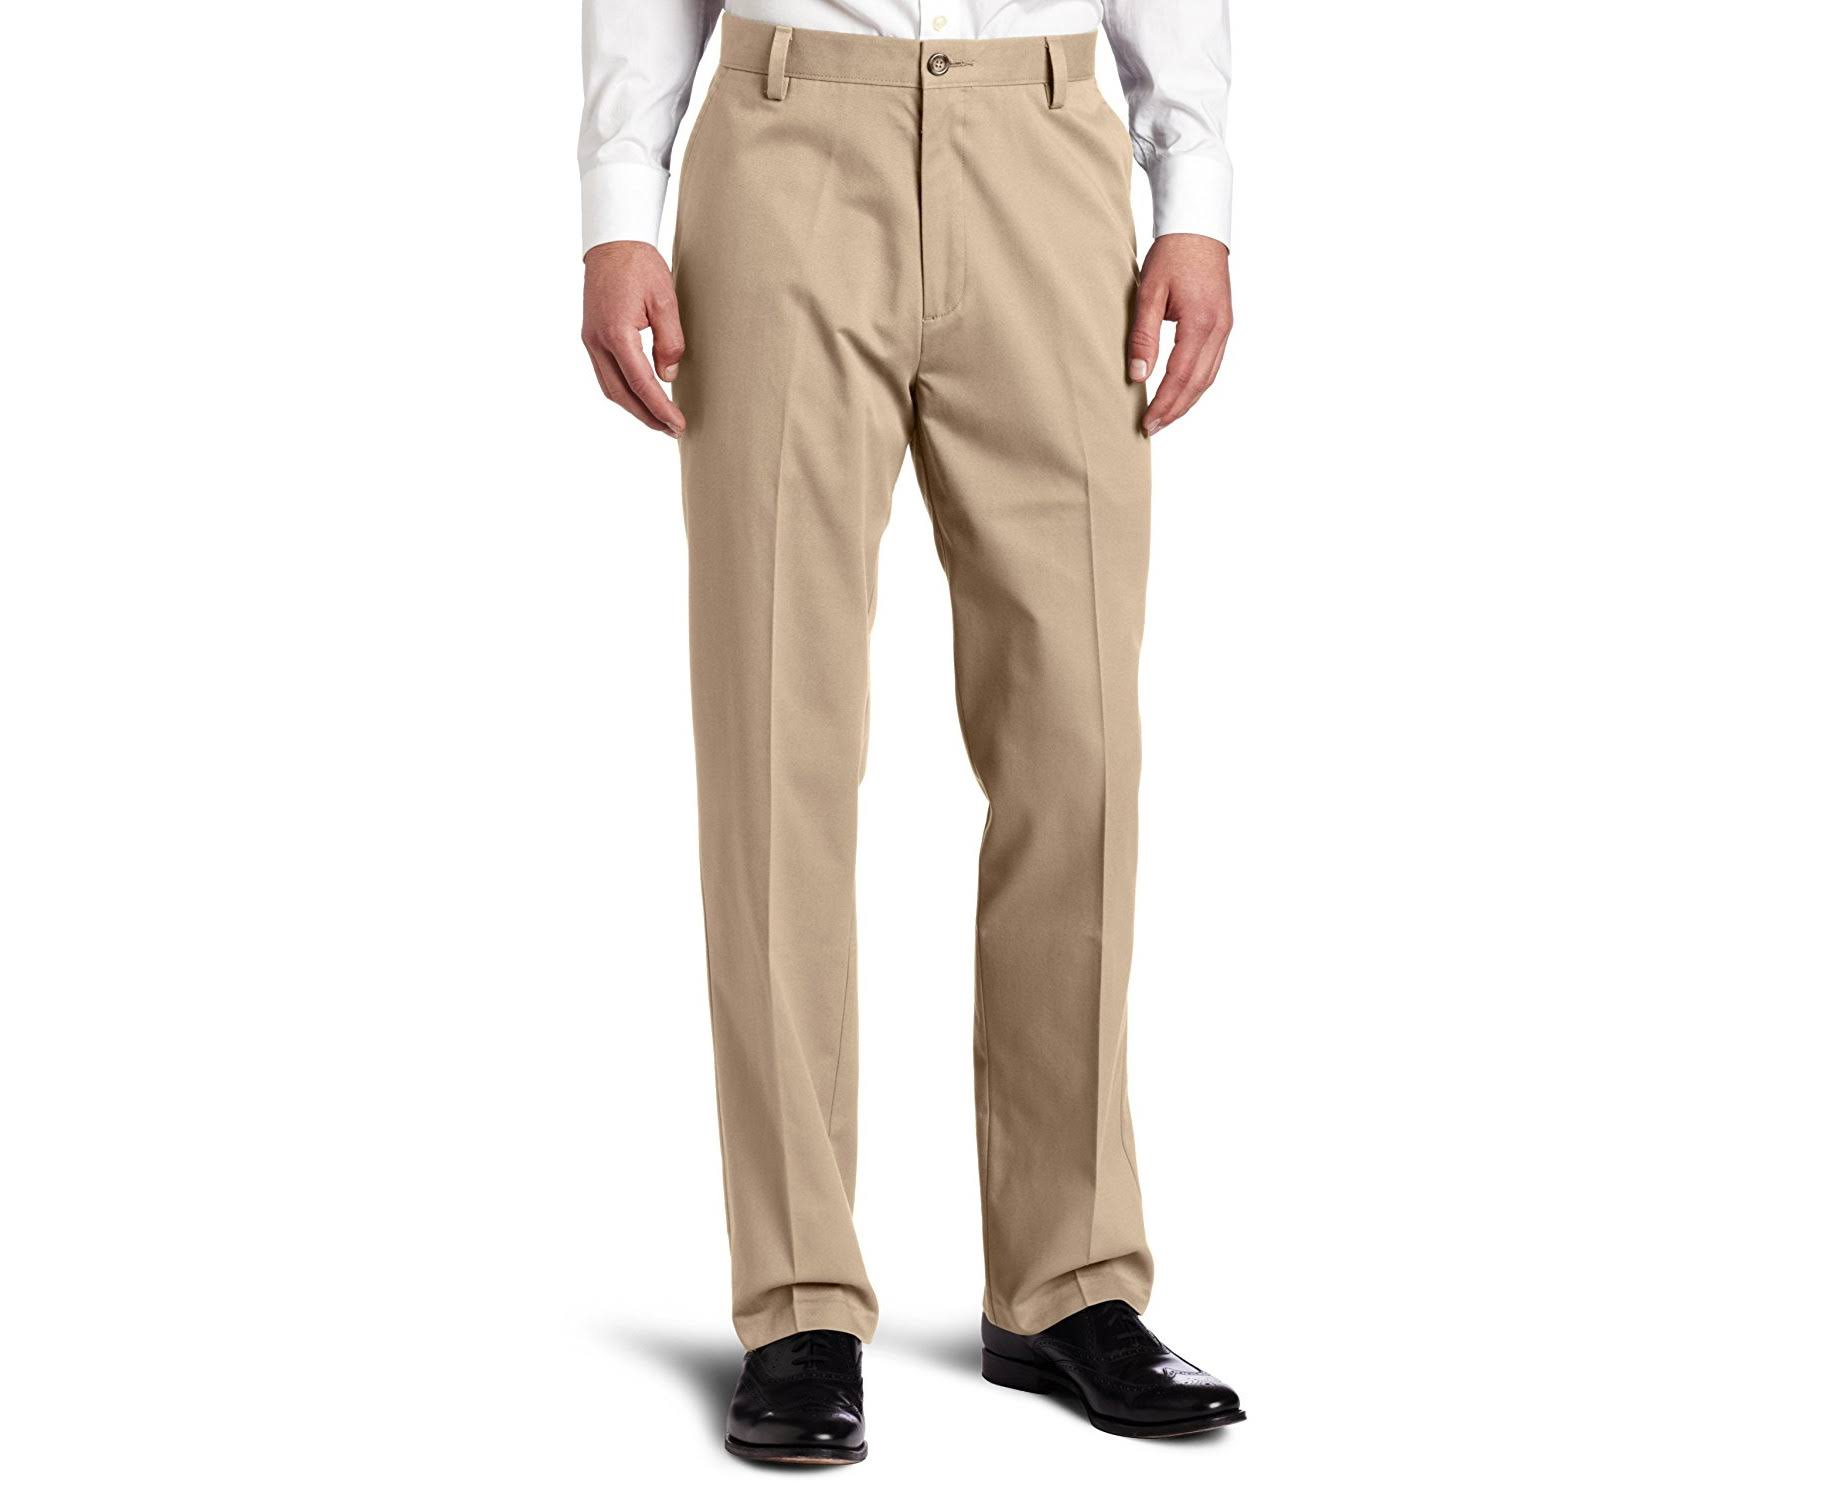 Dockers Men's Easy Khaki D3 Classic Fit Flat Front Pants, Size: 38x32, New British Khaki